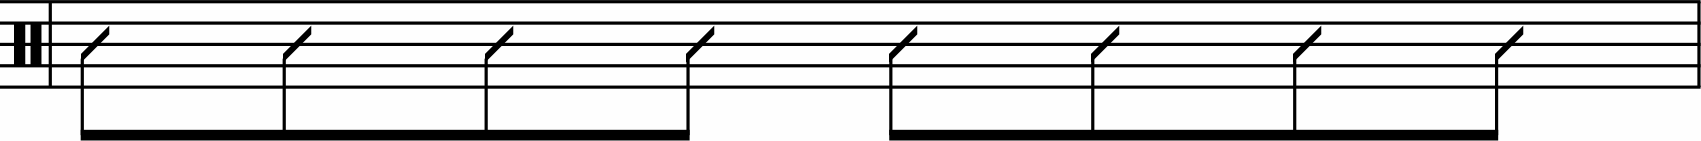 Eighth-note rhythm example.